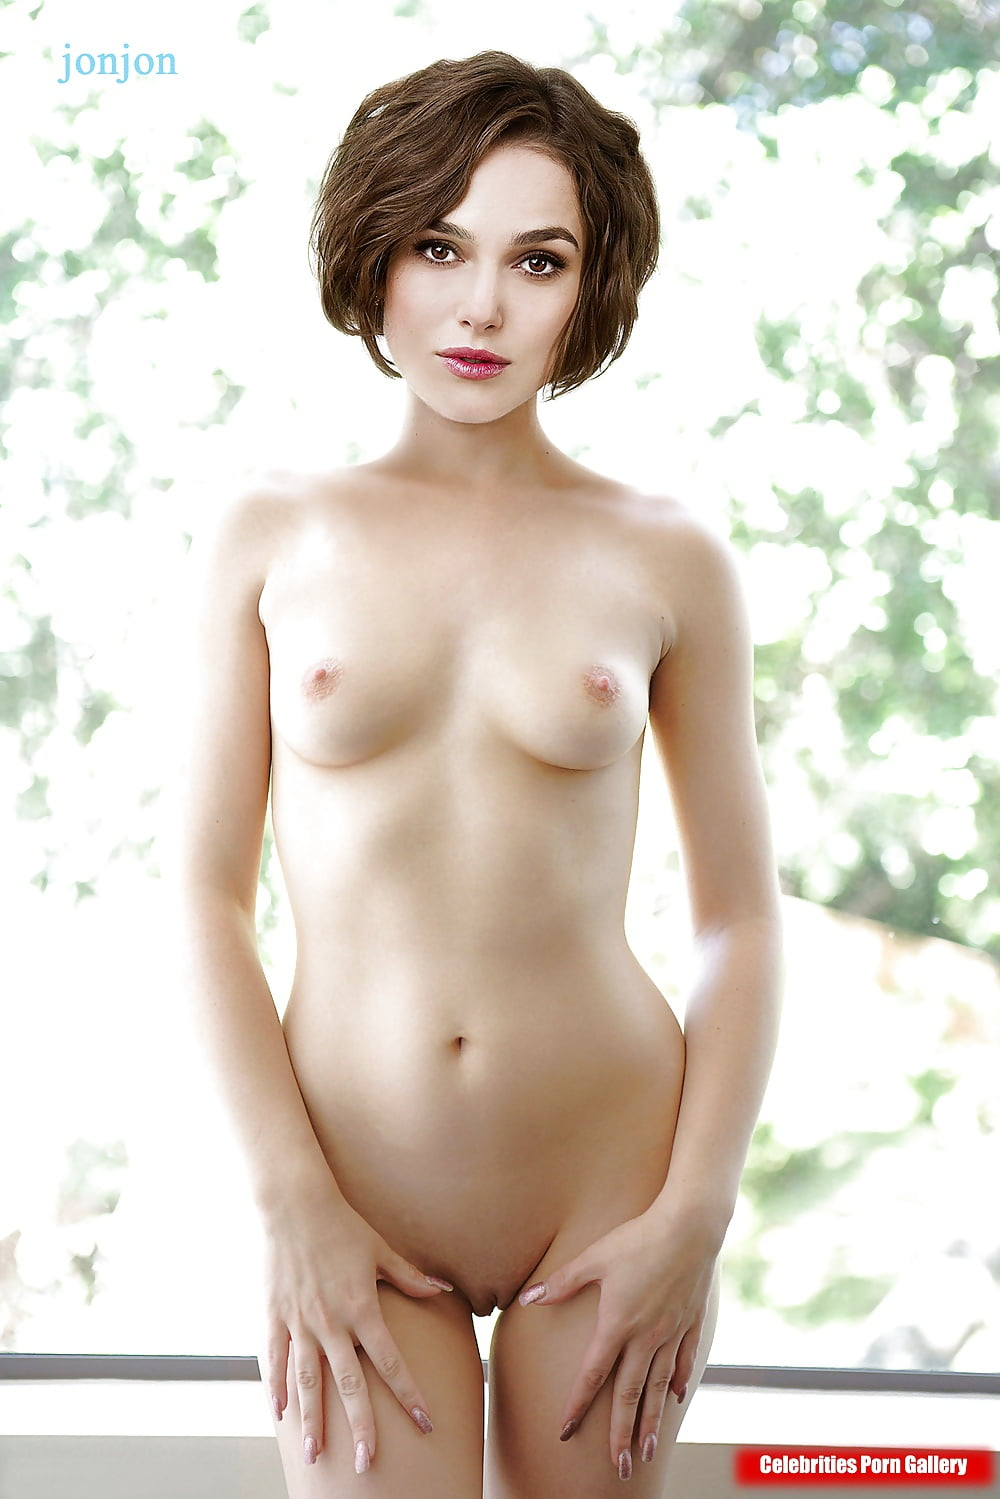 Teenage girl celebrities naked